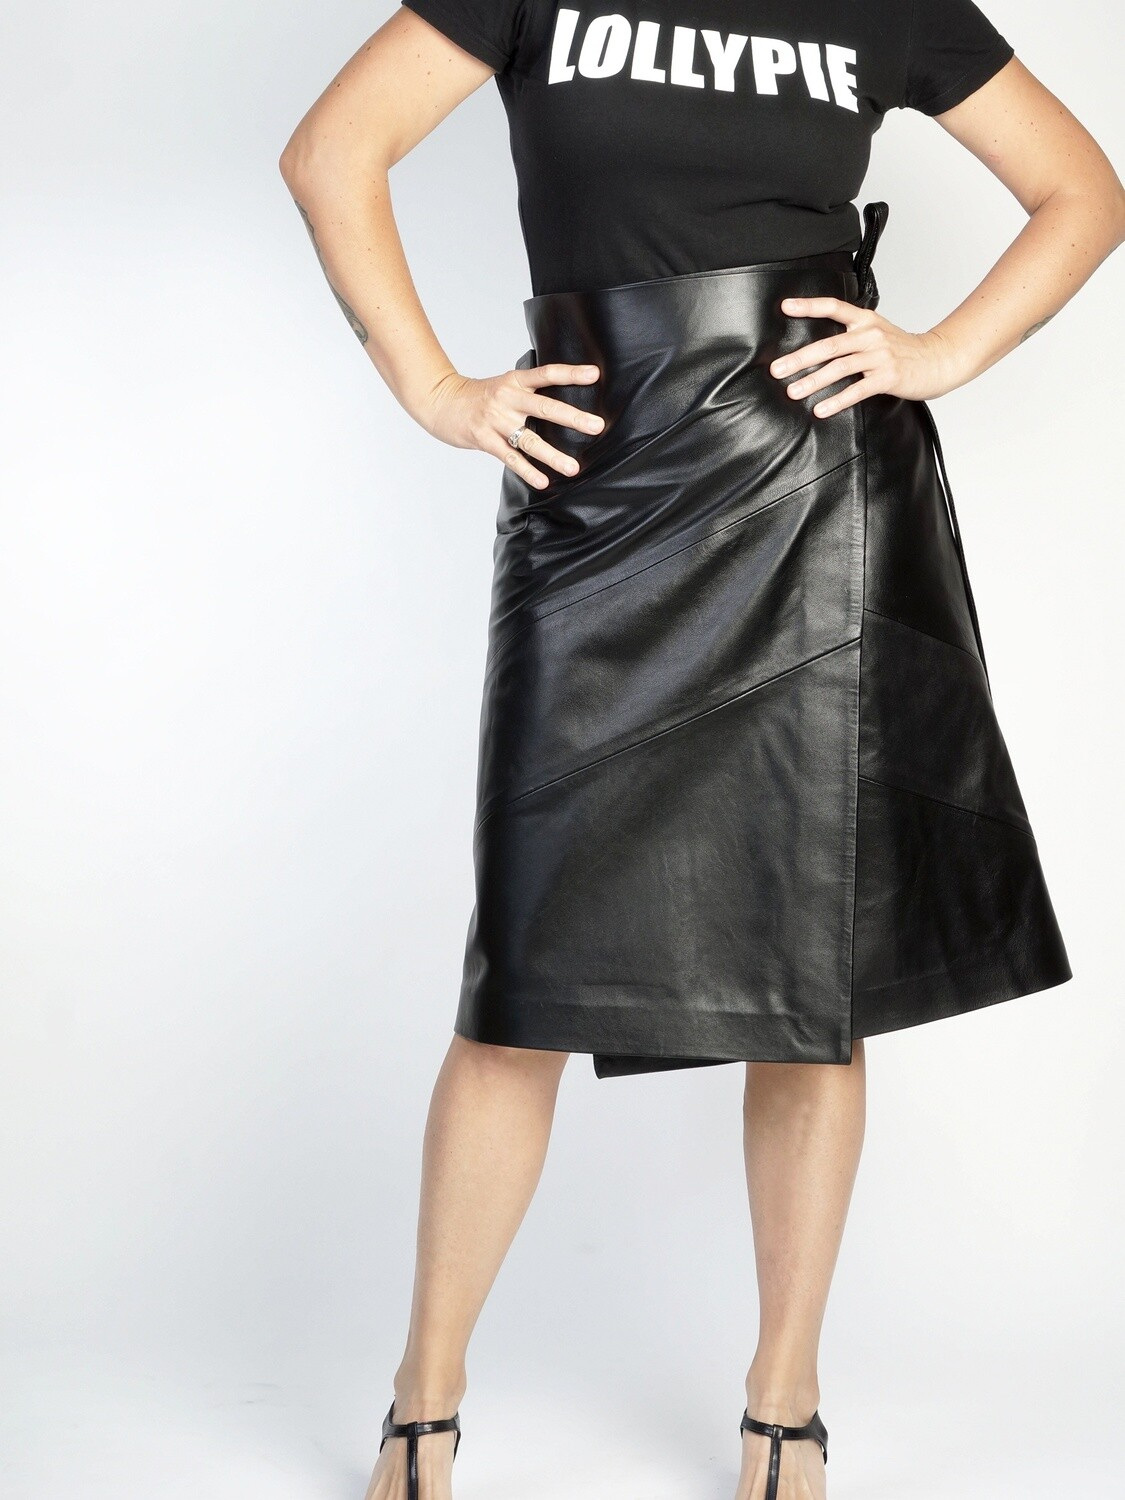 Leather skirt with a wrap below the knee